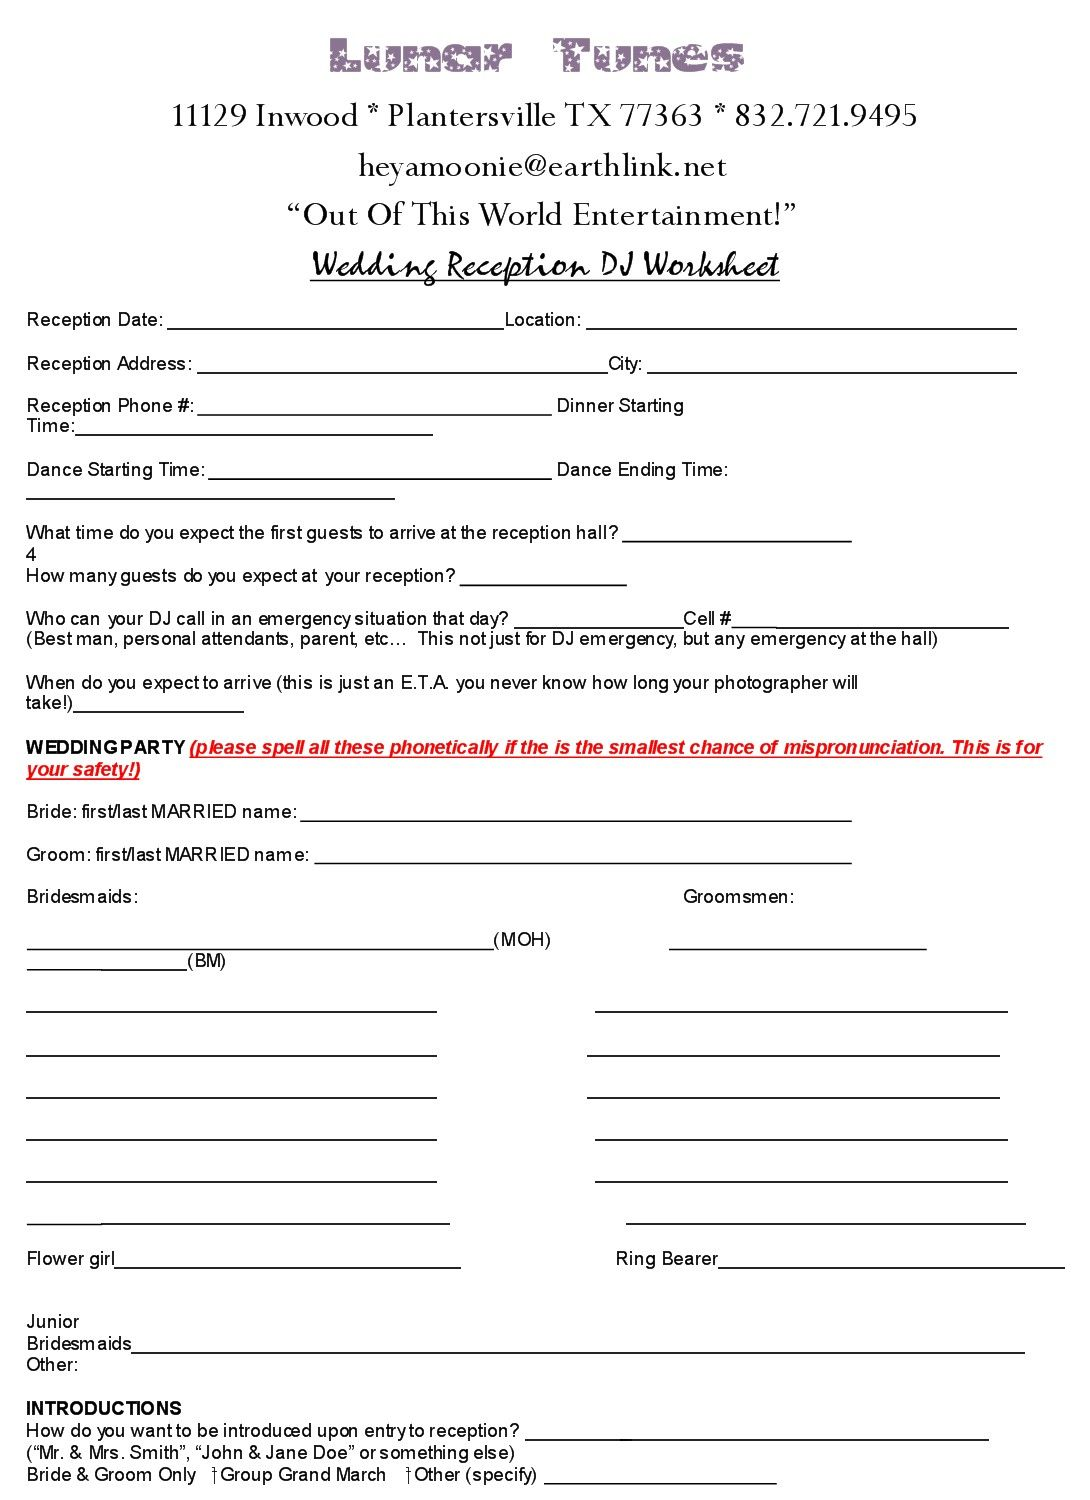 Wedding Dj Worksheet And Checklist